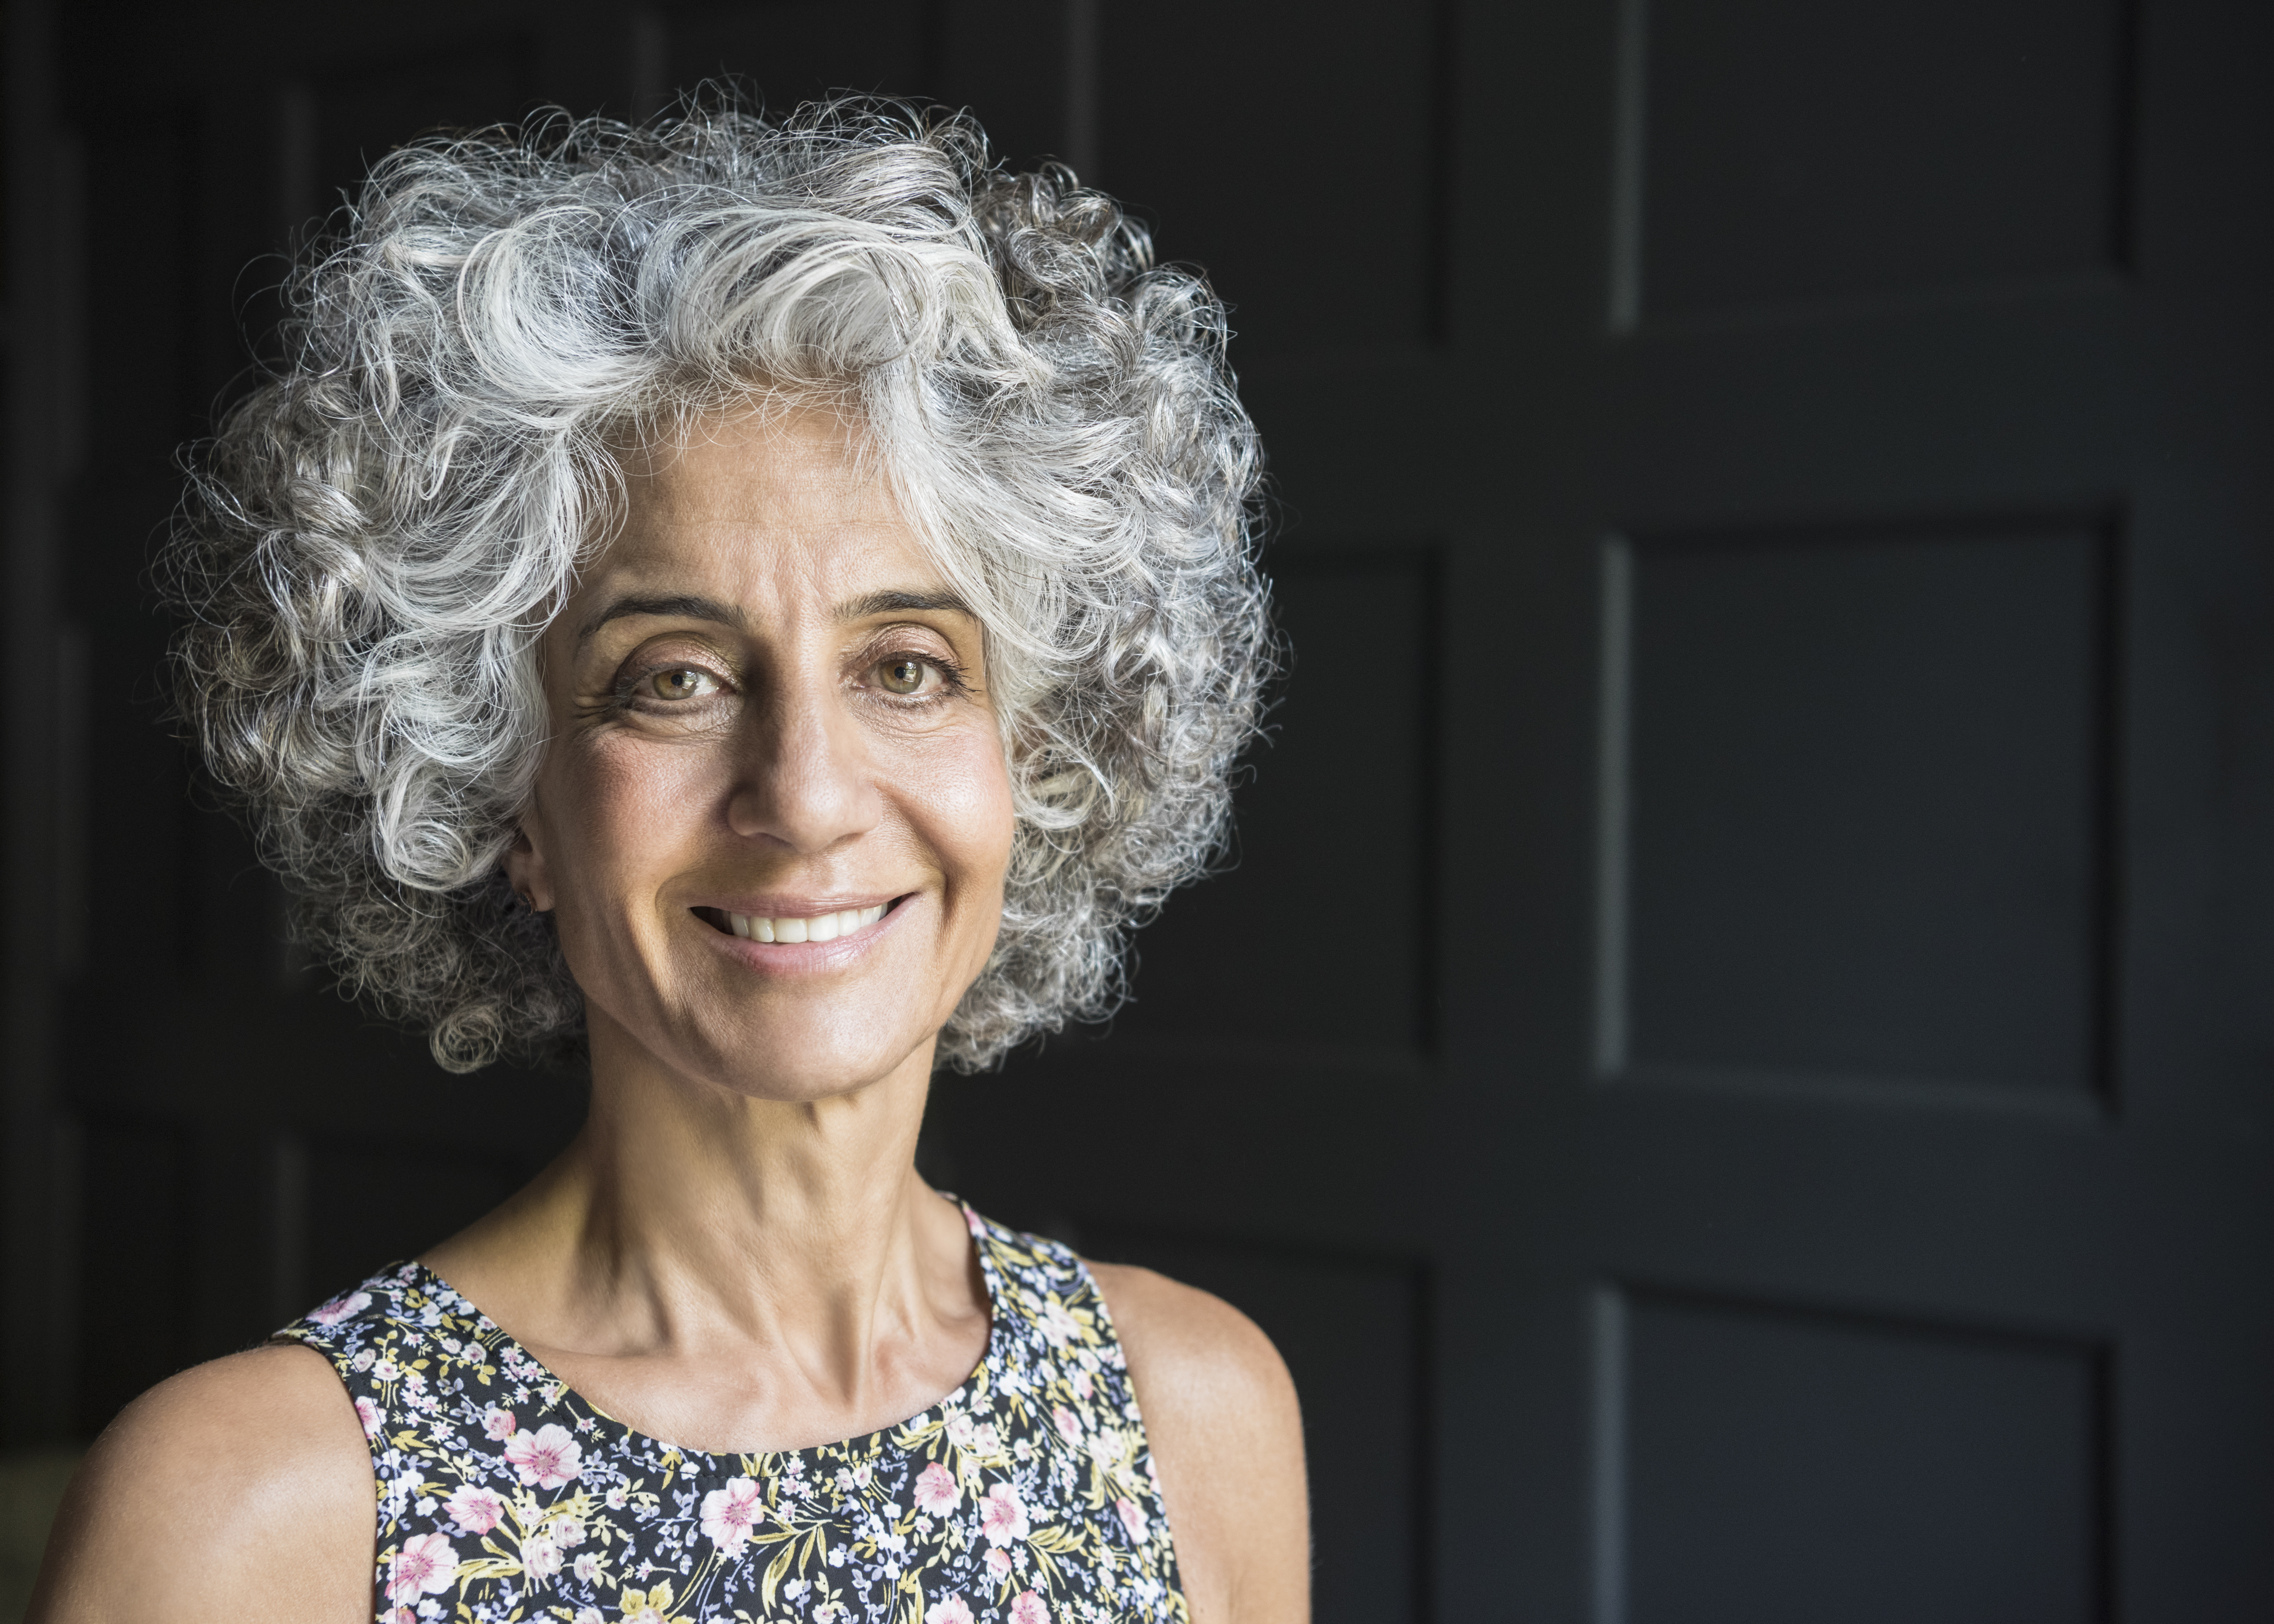 curly hair styles women over 50